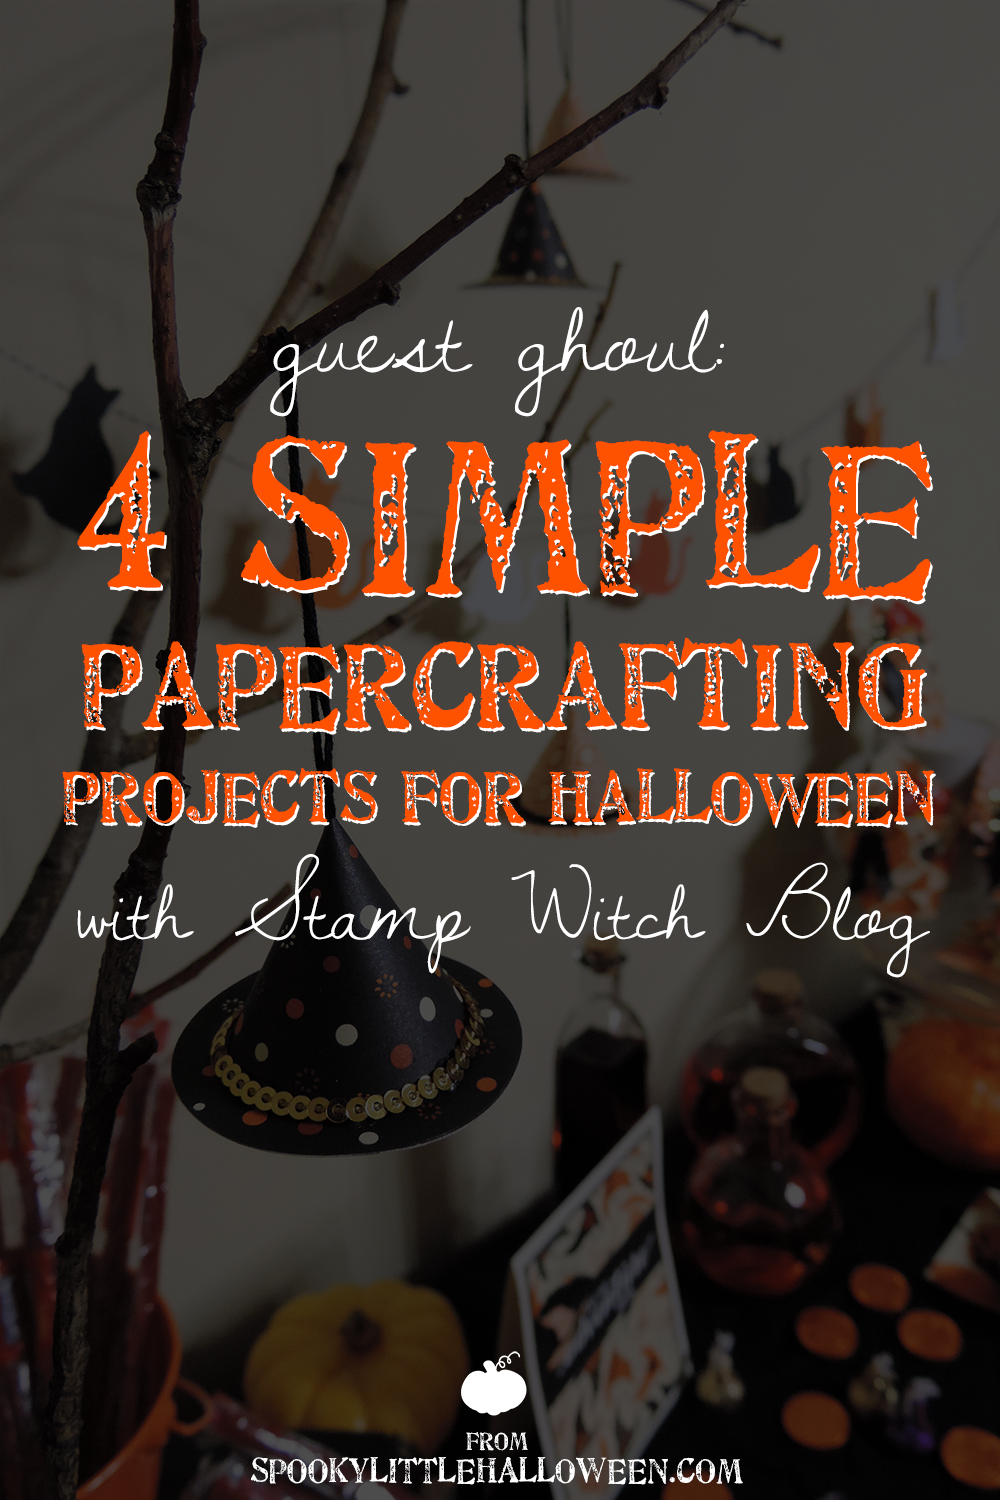 Guest Ghoul: 4 Simple Papercrafting Projects for Halloween